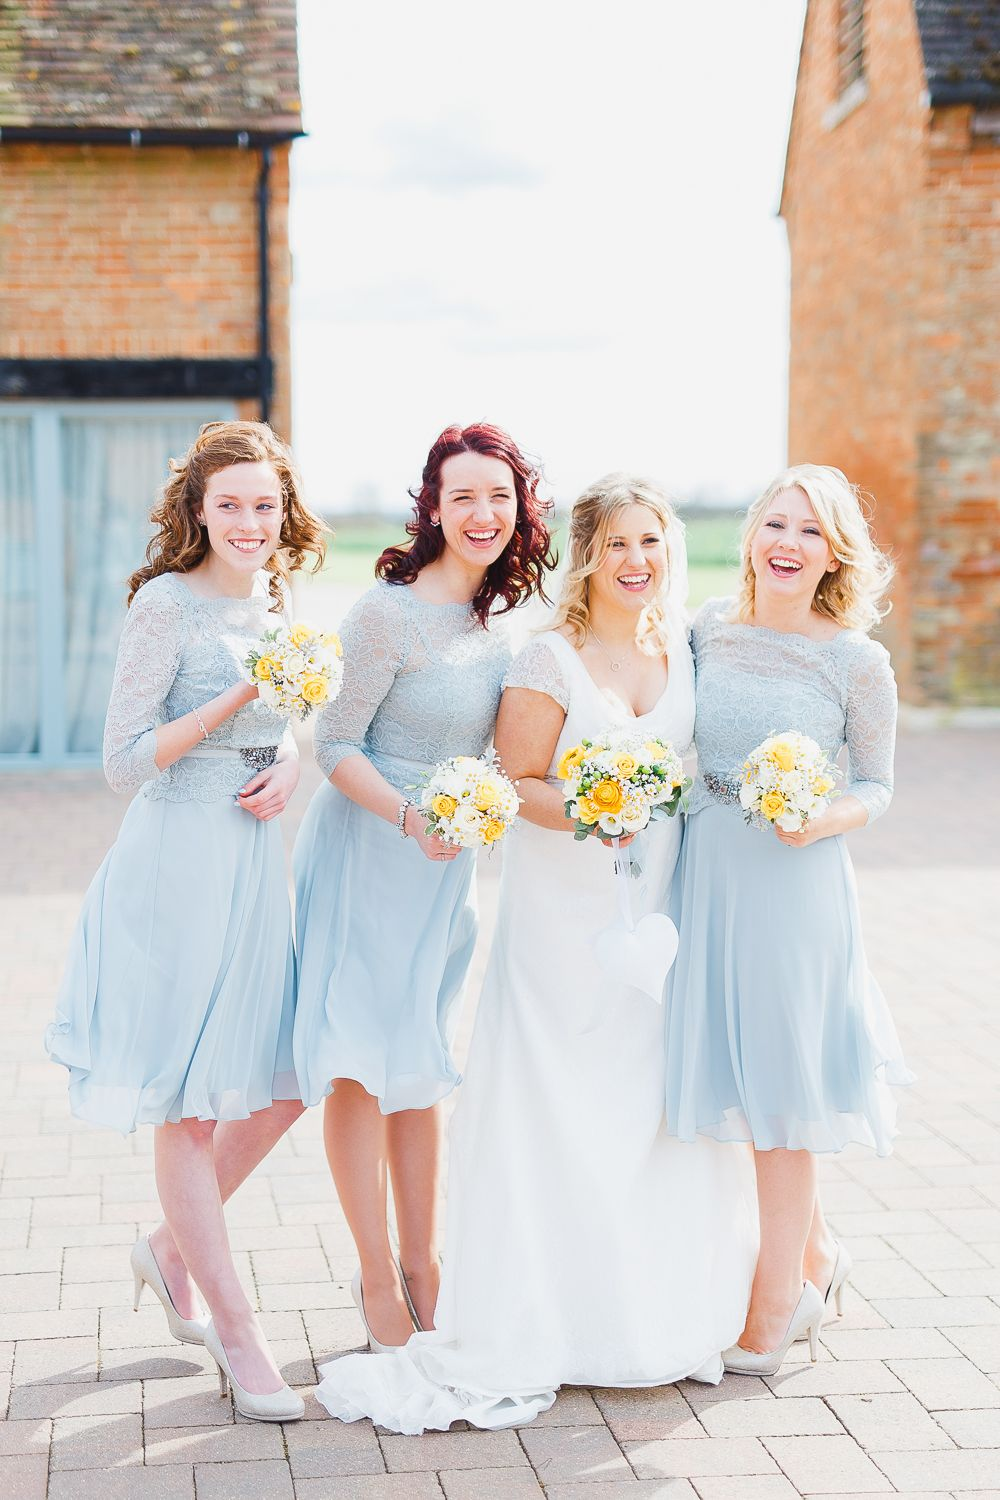 Rustic wedding with yellow colour scheme at bassmead manor barns baby blue lace bridesmaid dresses rustic wedding yellow colour scheme bassmead manor barns ombrellifo Images